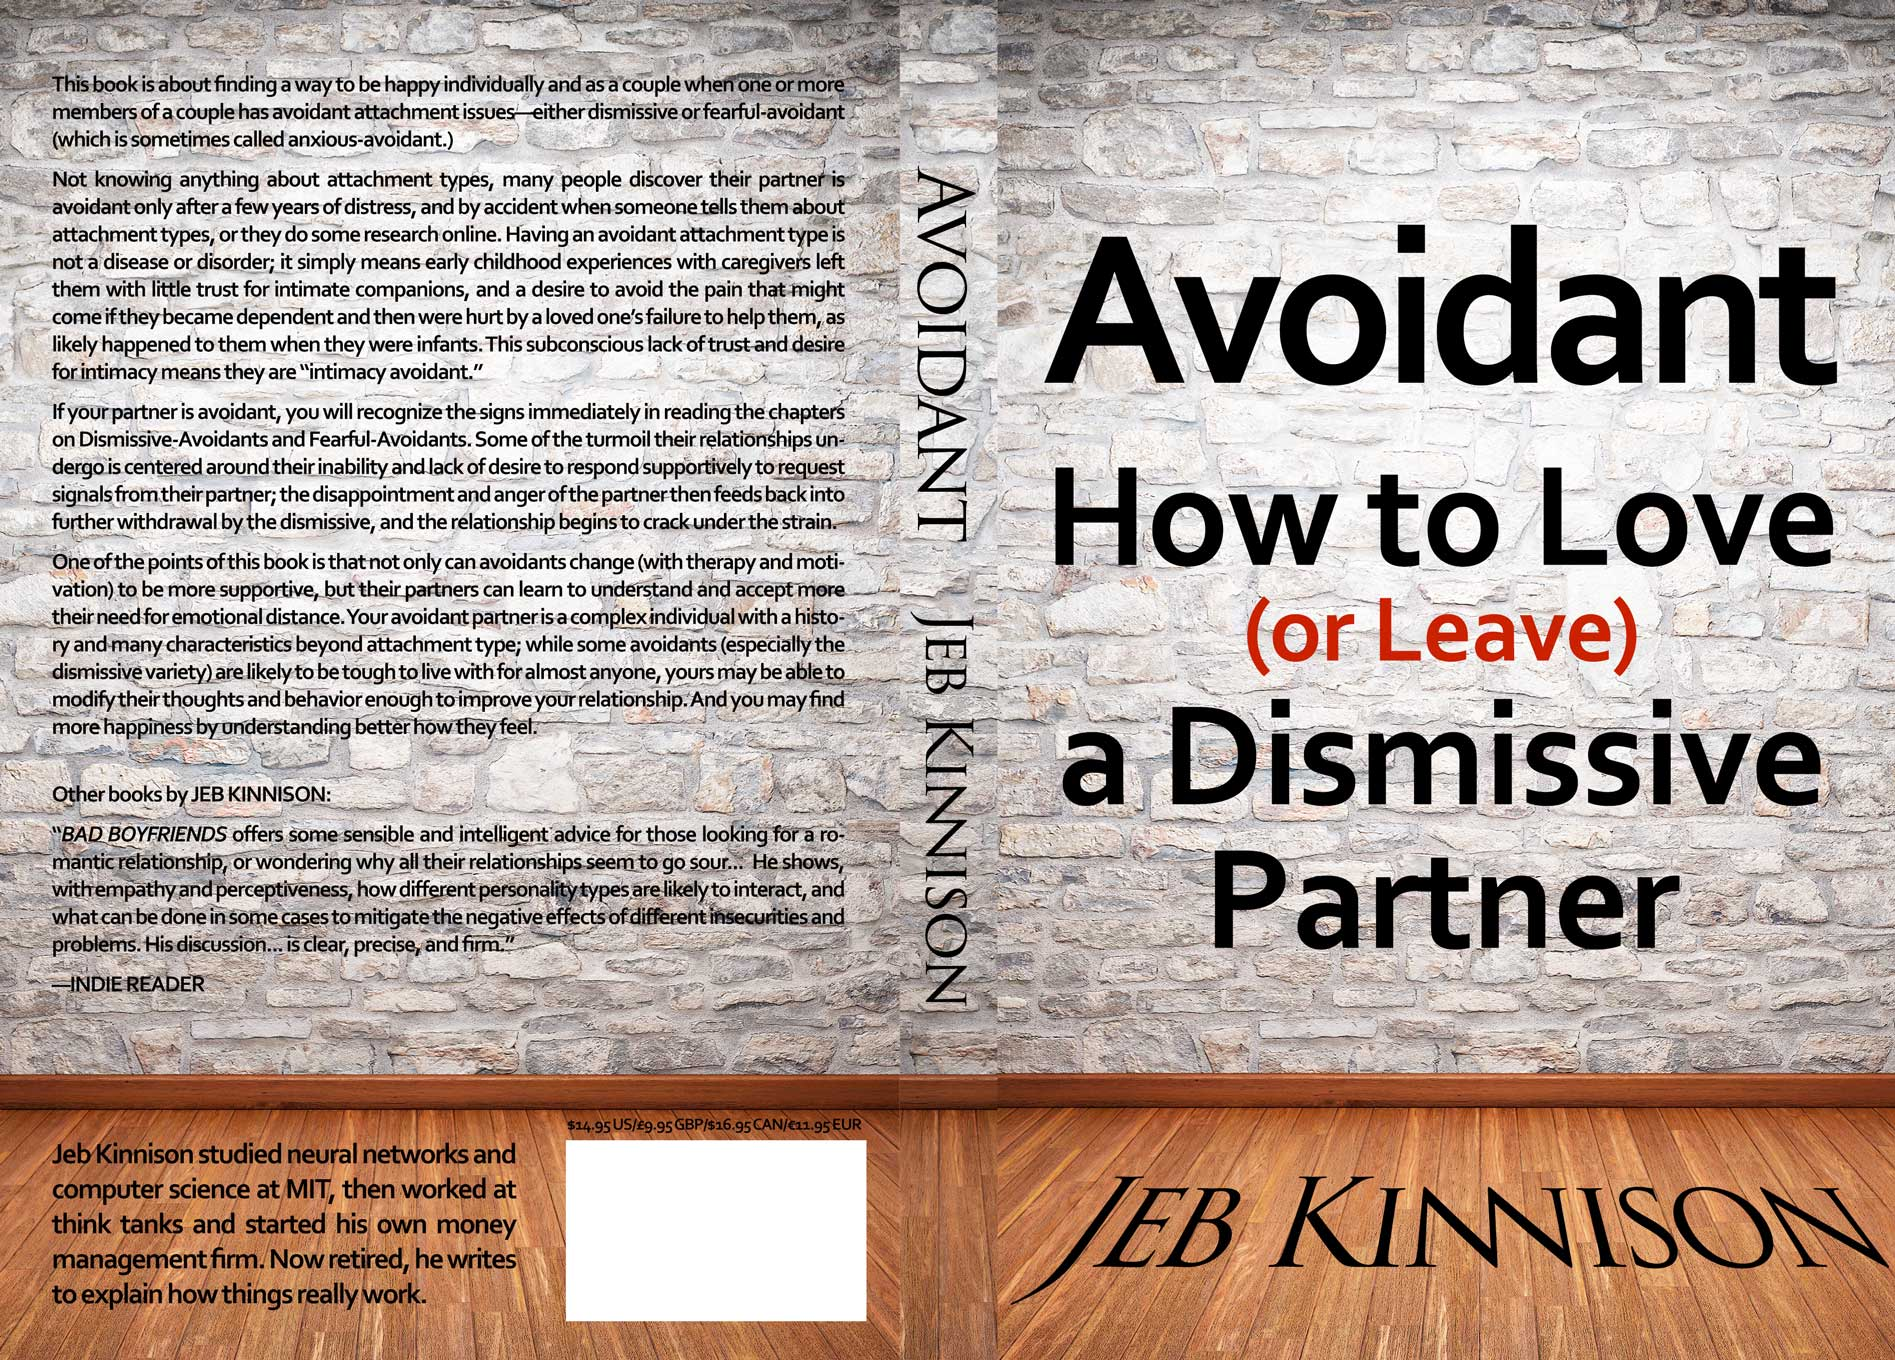 Adult attachment disorder avoidant